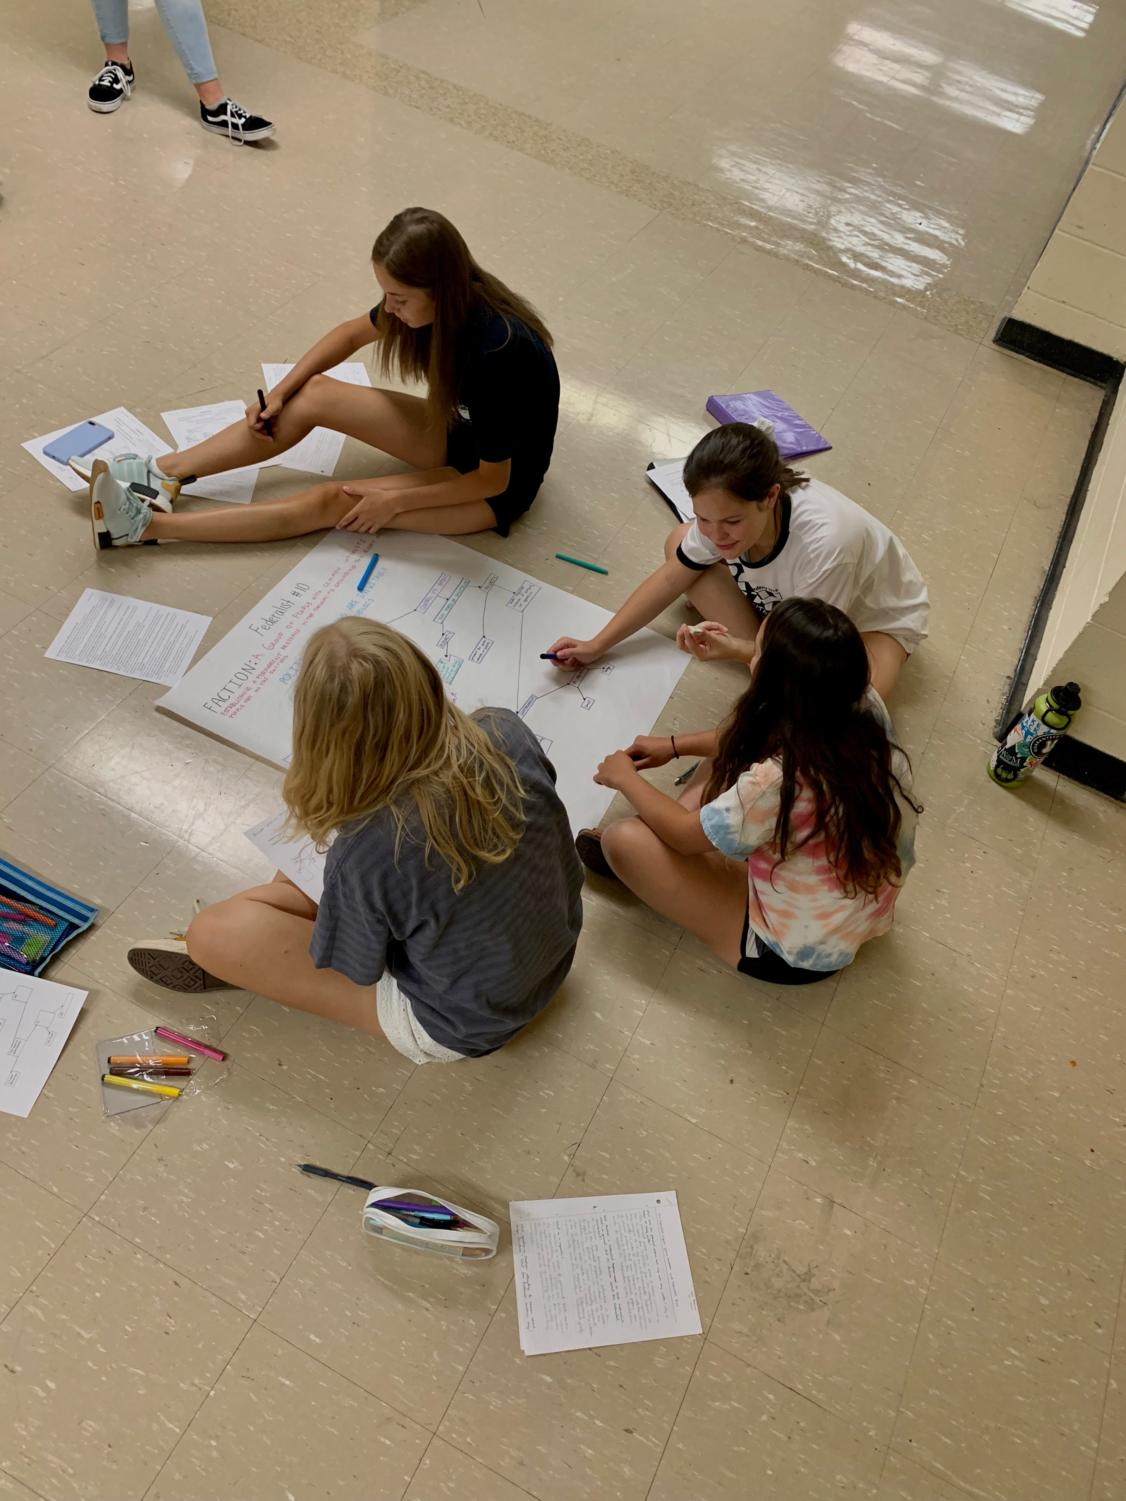 Seniors Gabi Robinson, Molly Matheson, Mary Waterman, and Brandy Beisinger all sit in the hallway and work on a project for one of their AP classes.